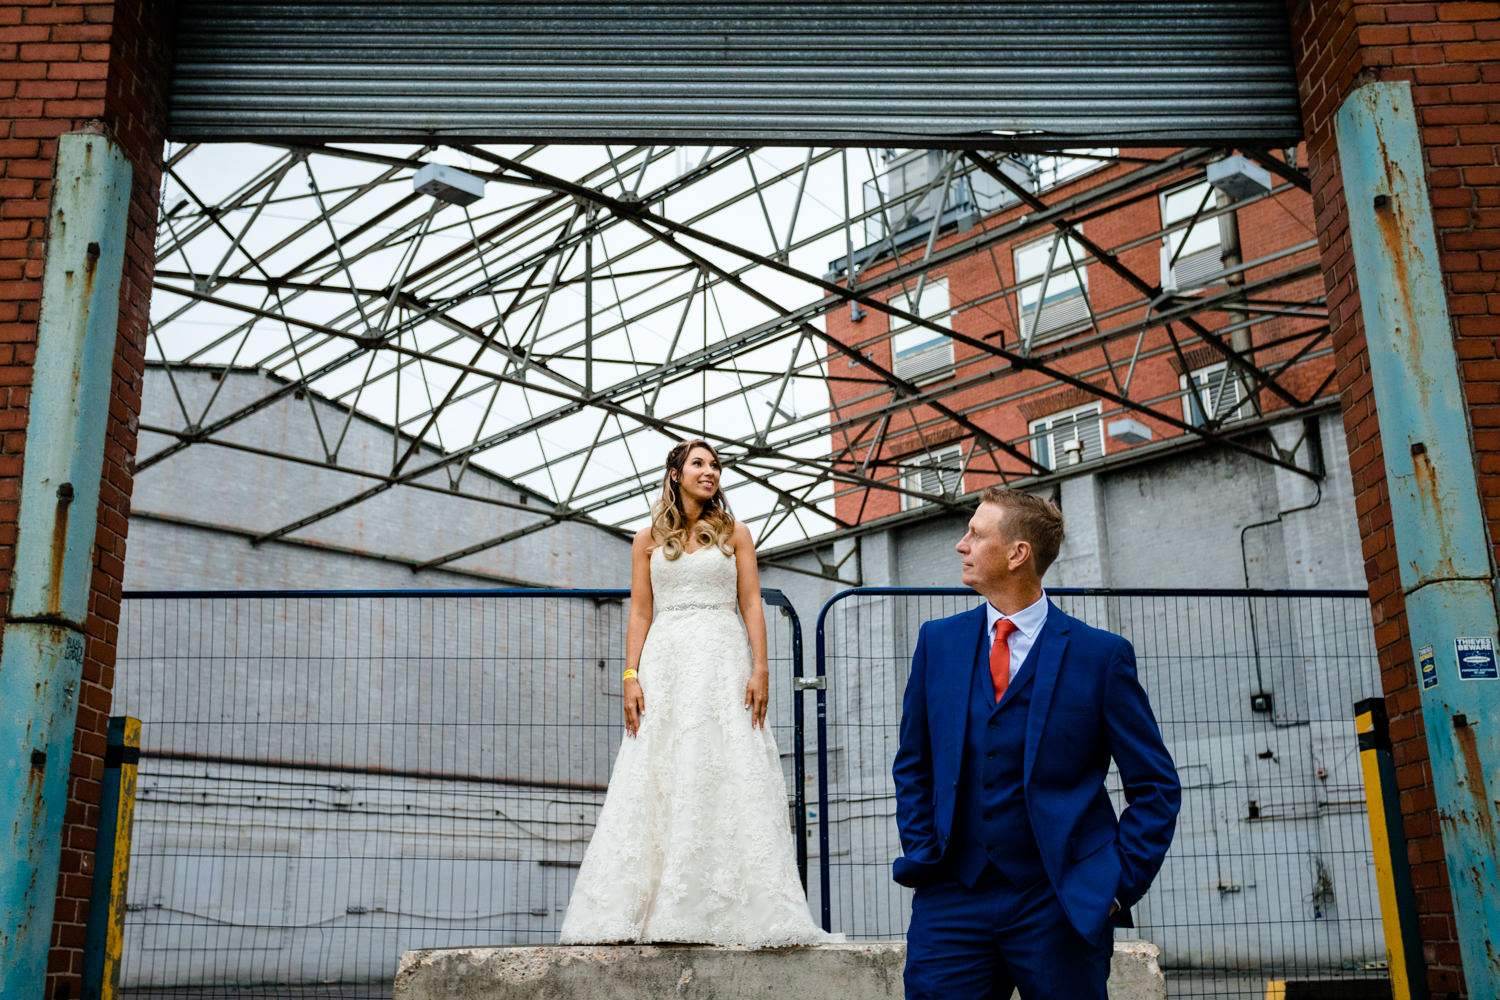 victoria-warehouse-wedding-photographer-087.jpg